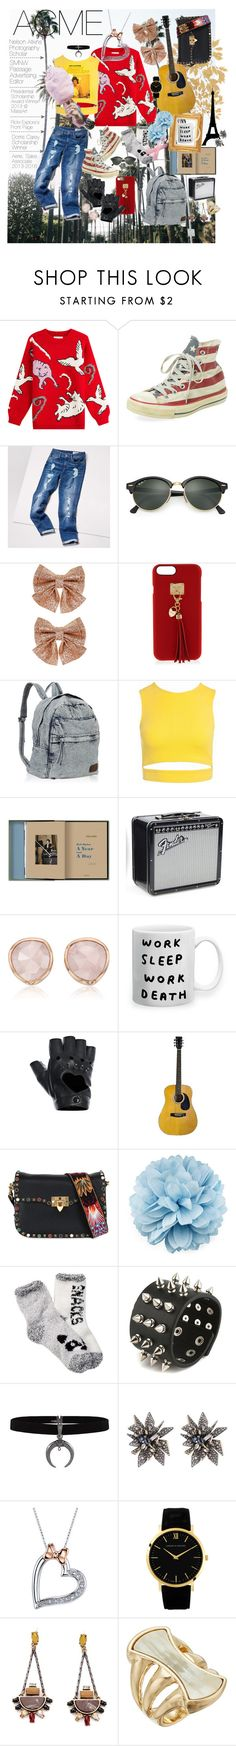 """""""Acme Application"""" by claire-marley on Polyvore featuring Paul & Joe, Converse, Tommy Hilfiger, Ray-Ban, Monsoon, Henri Bendel, Sans Souci, Columbia, Monica Vinader and FRACOMINA"""